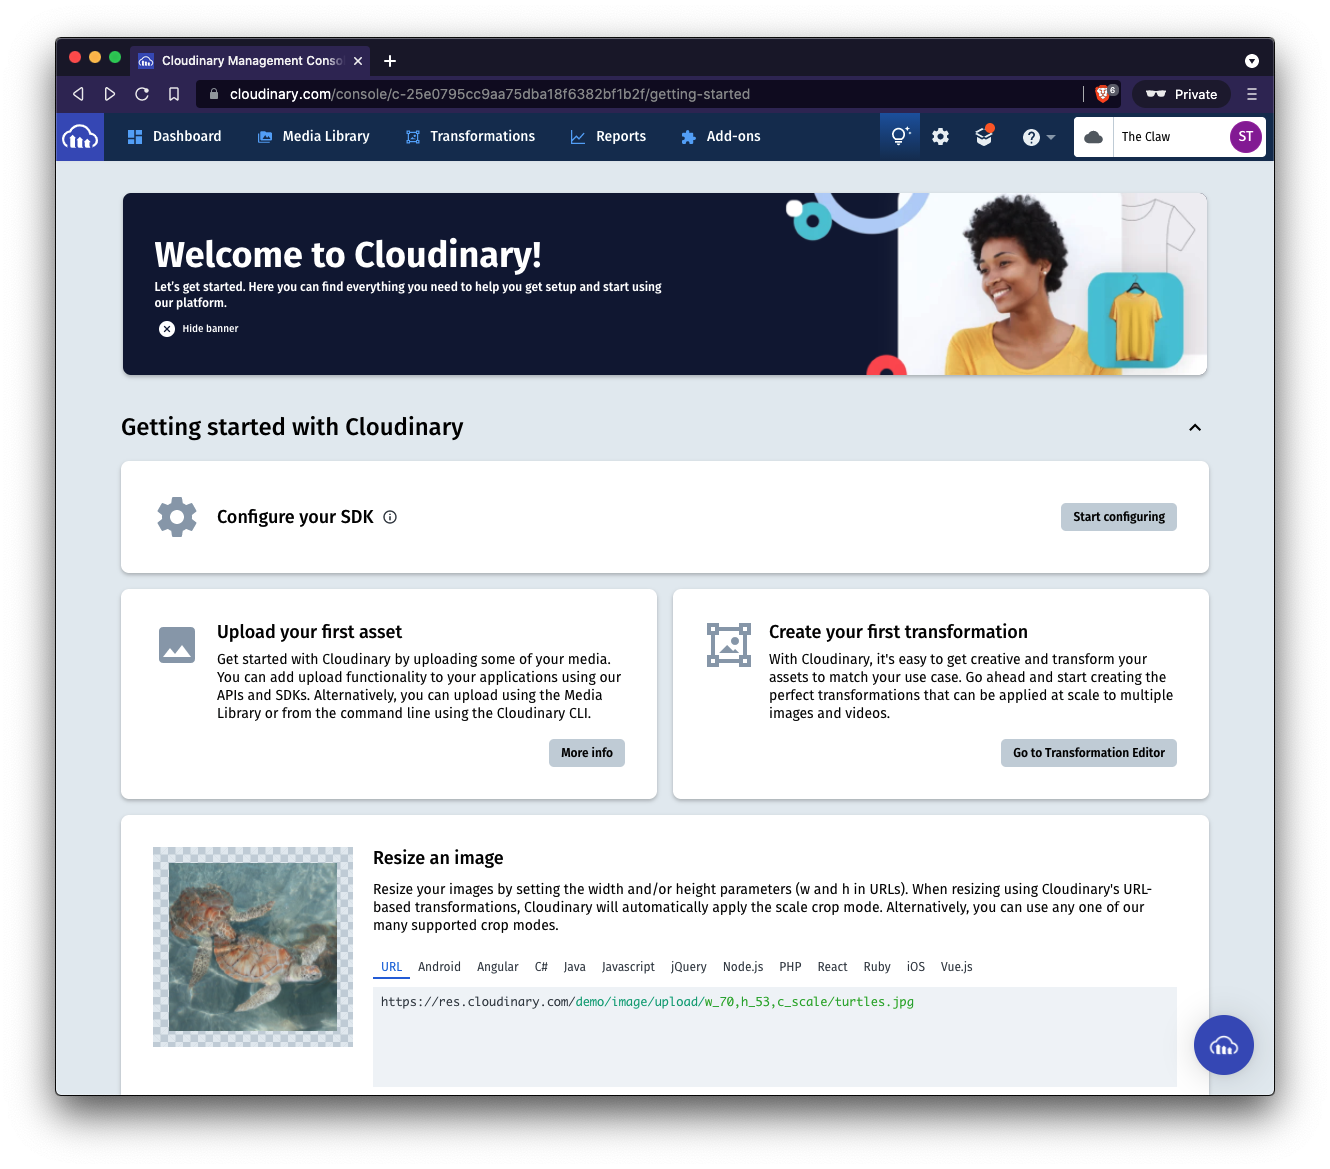 A screenshot of the Cloudinary welcome screen that you see after you log in to a fresh account.